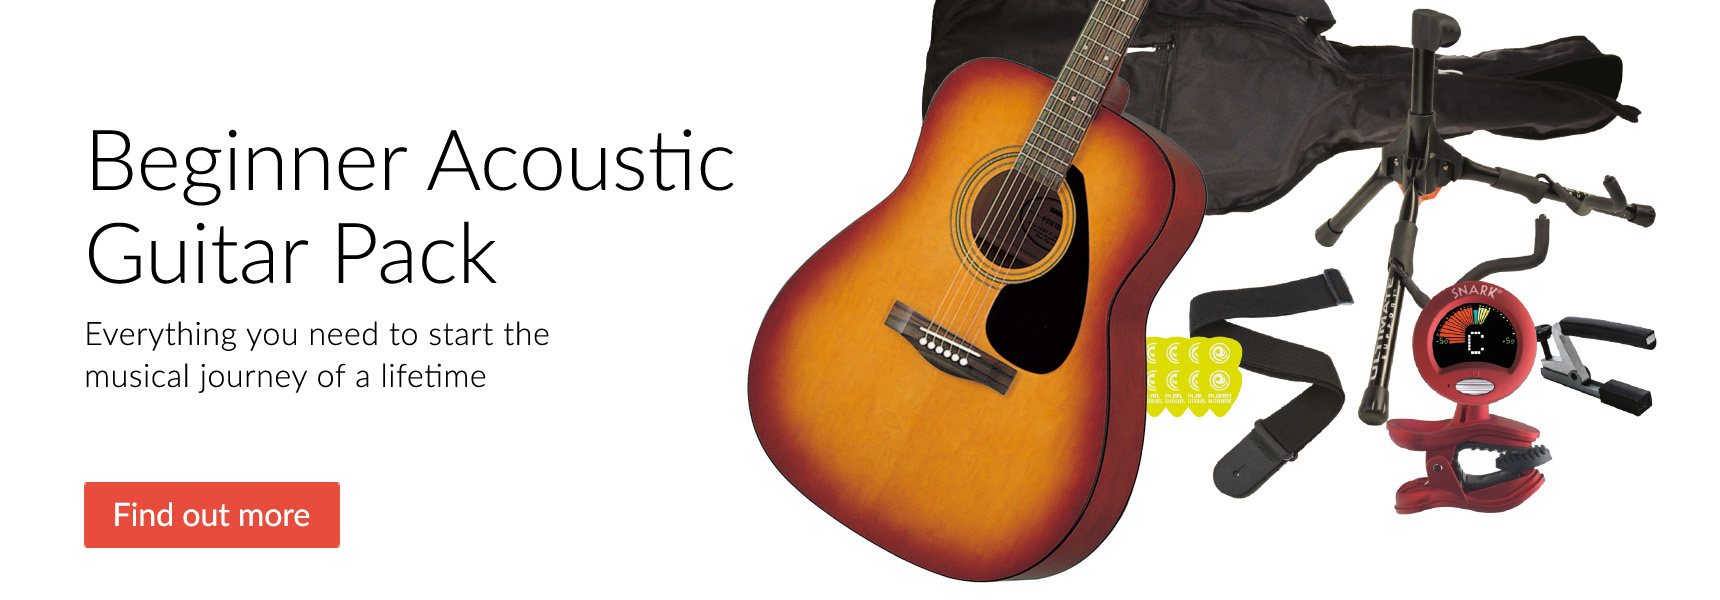 Yamaha F310 Acoustic Guitar Beginners' Pack - Click here